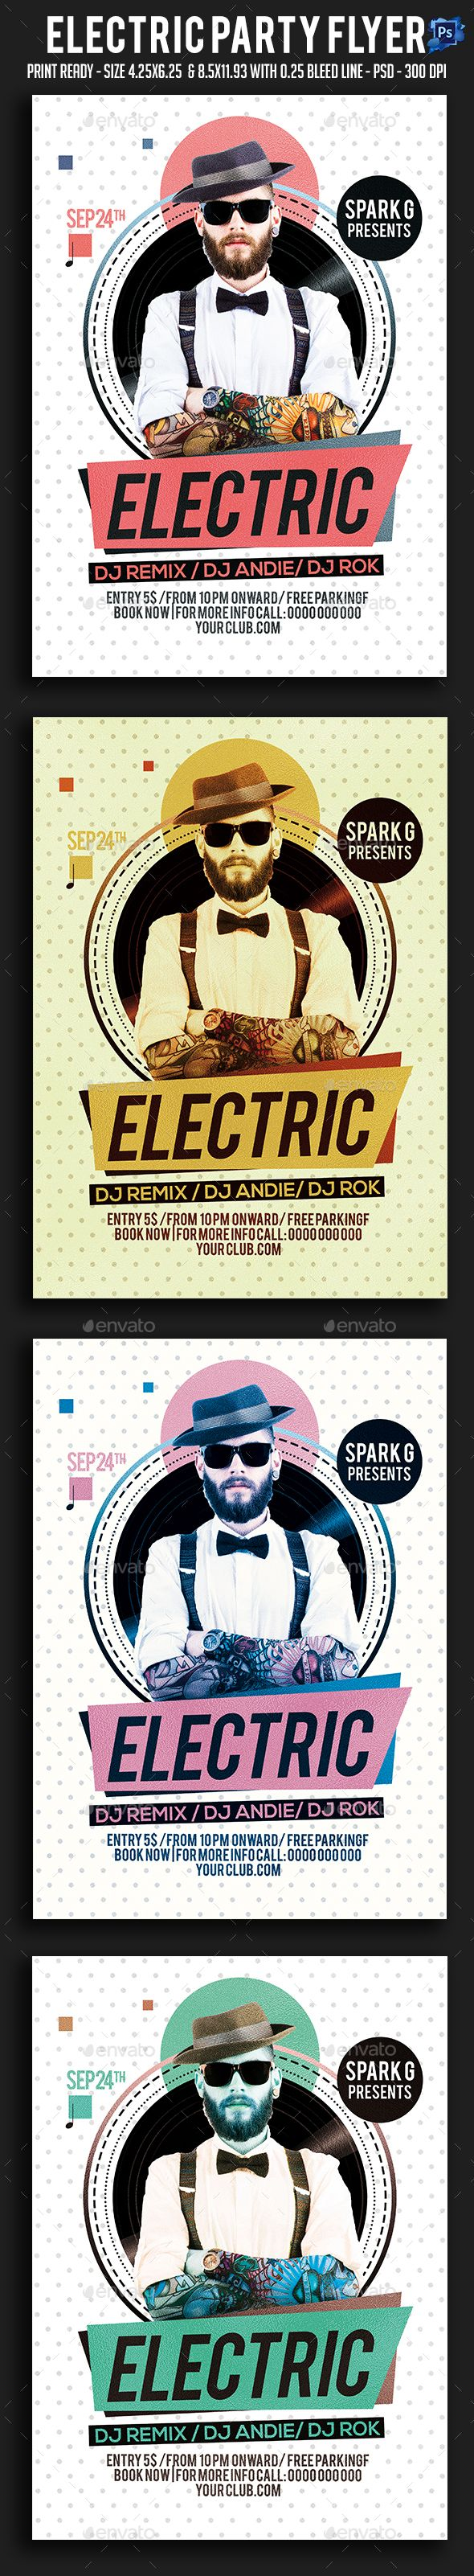 5s poster design - Electric Party Flyer